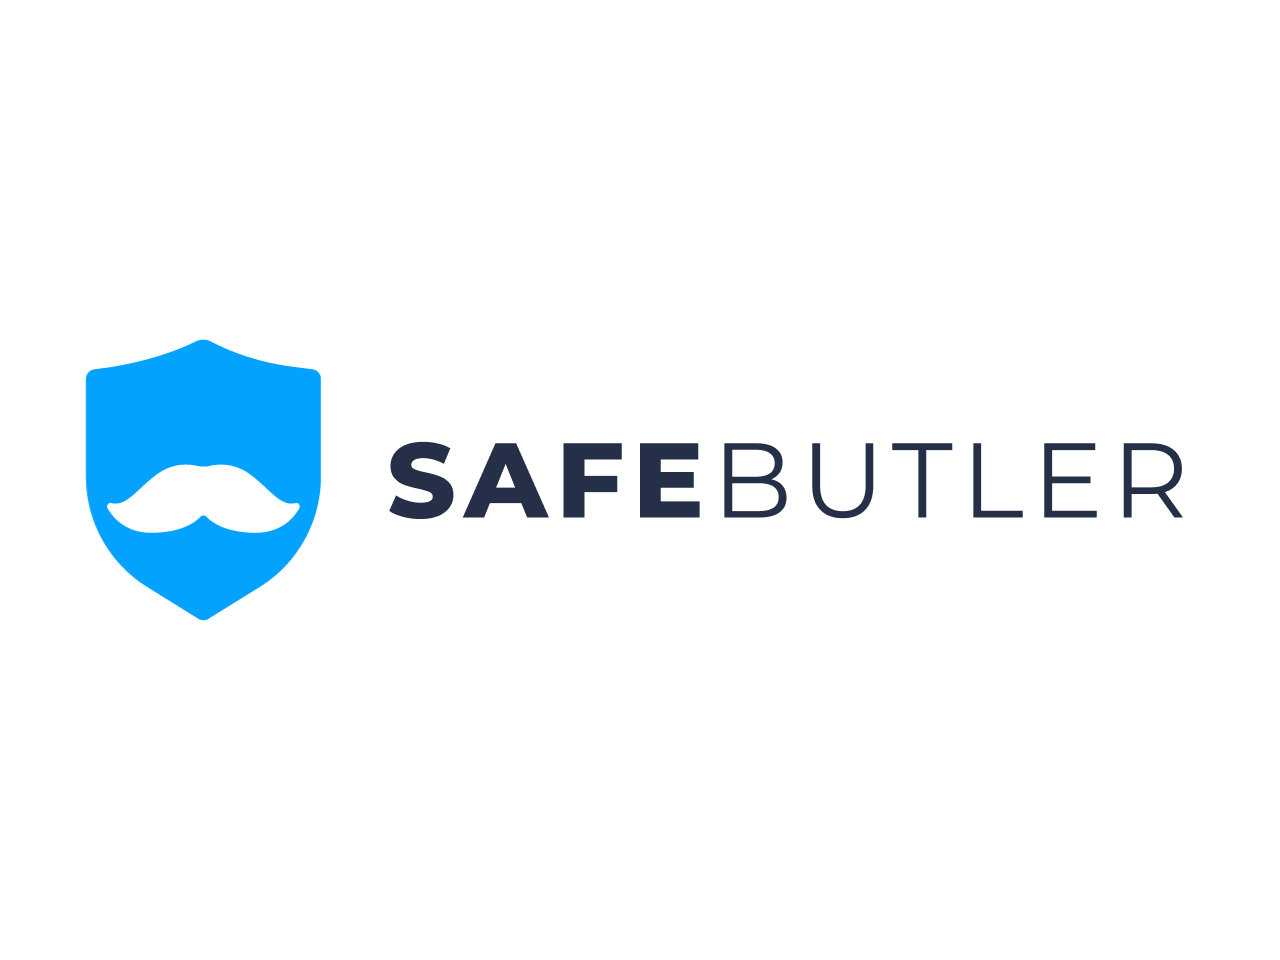 SafeButler and Ladder Partner to Offer Fast and Simple Life Insurance